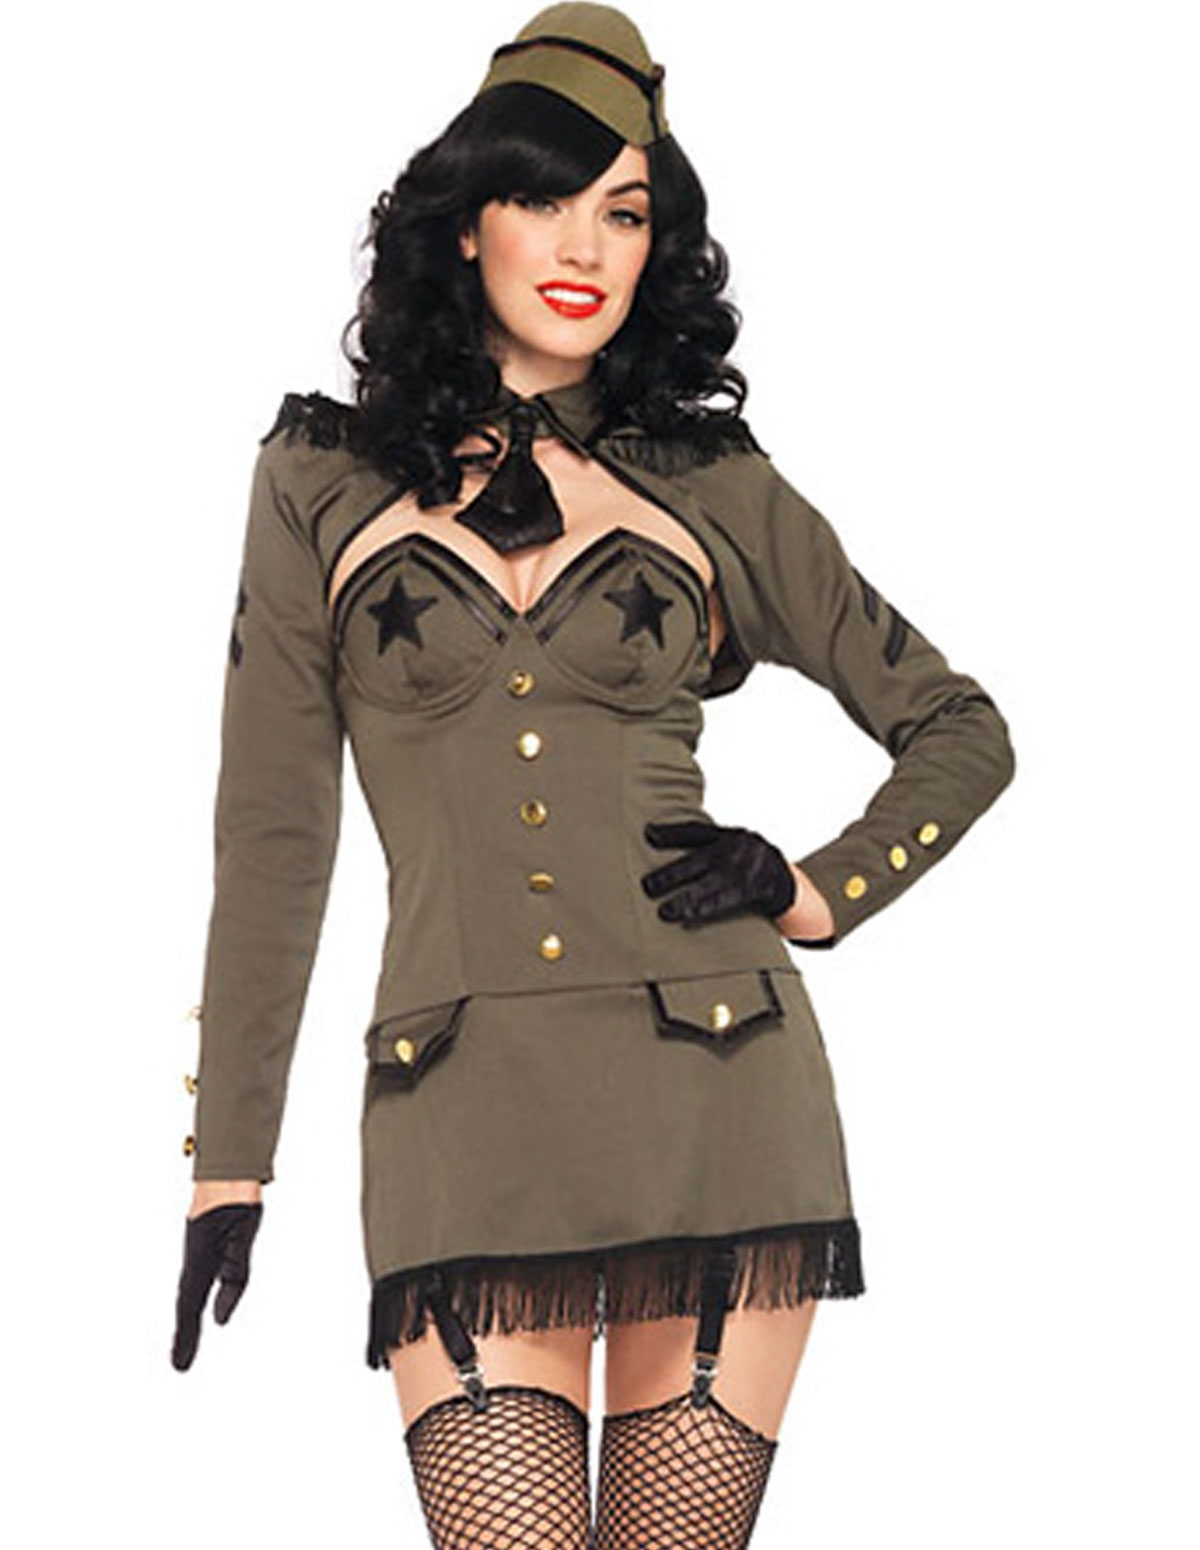 5Pc Pin-Up Army Girl Costume